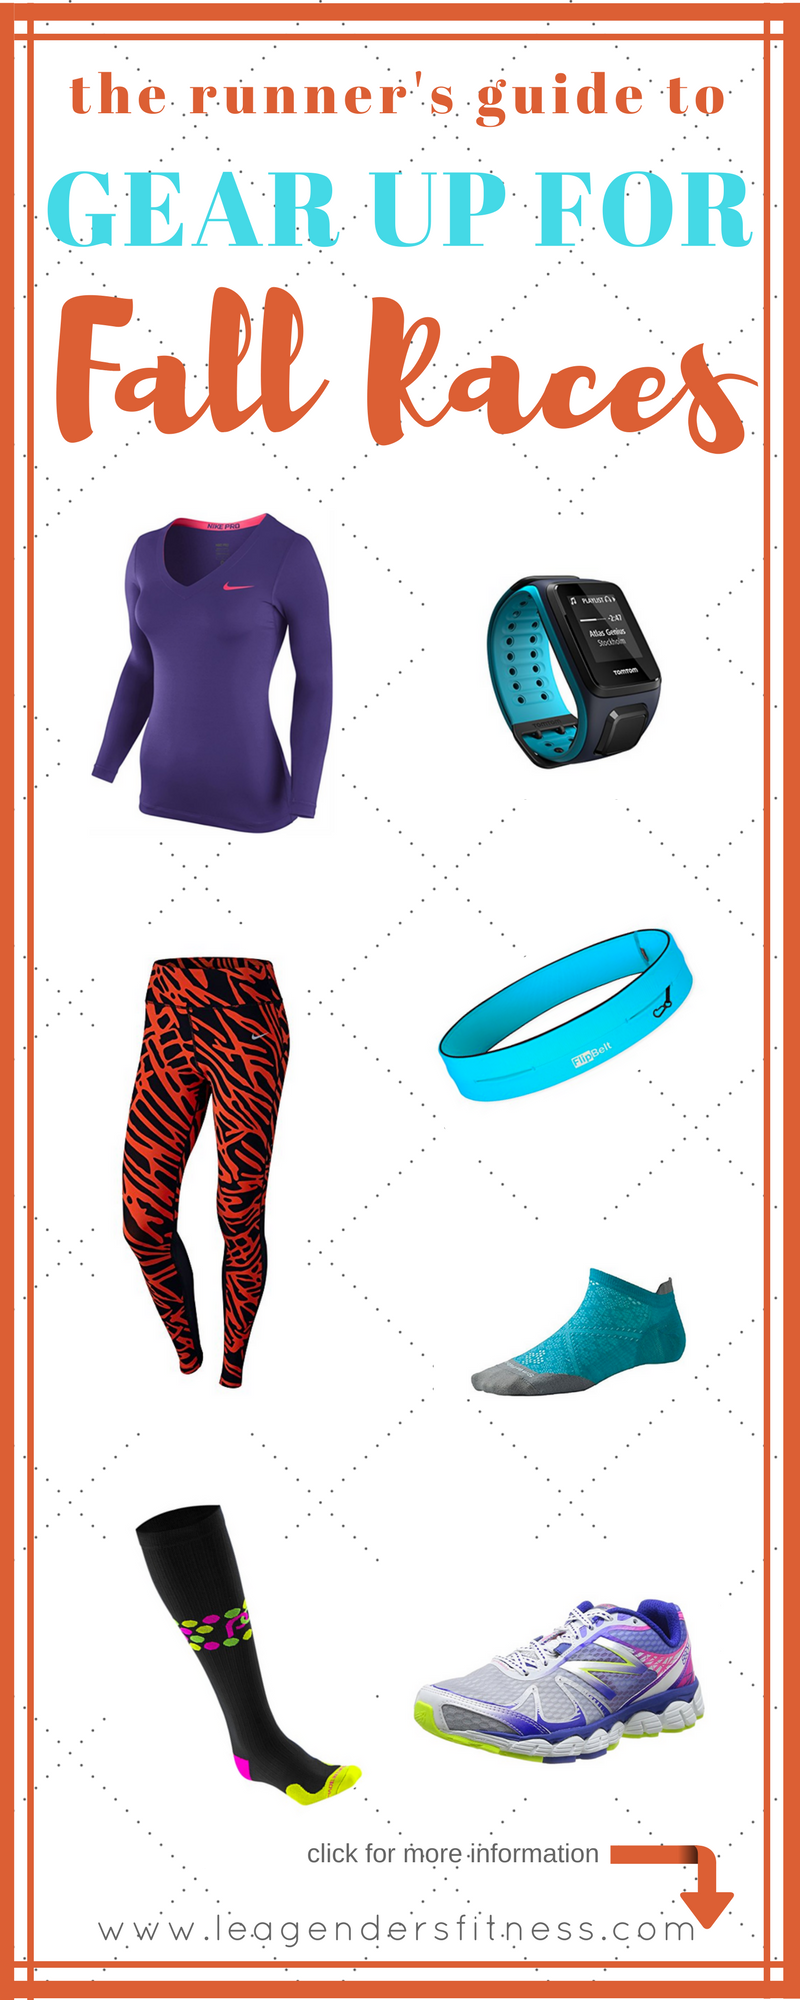 RUNNER'S GUIDE TO GEAR UP FOR FALL RACES.png